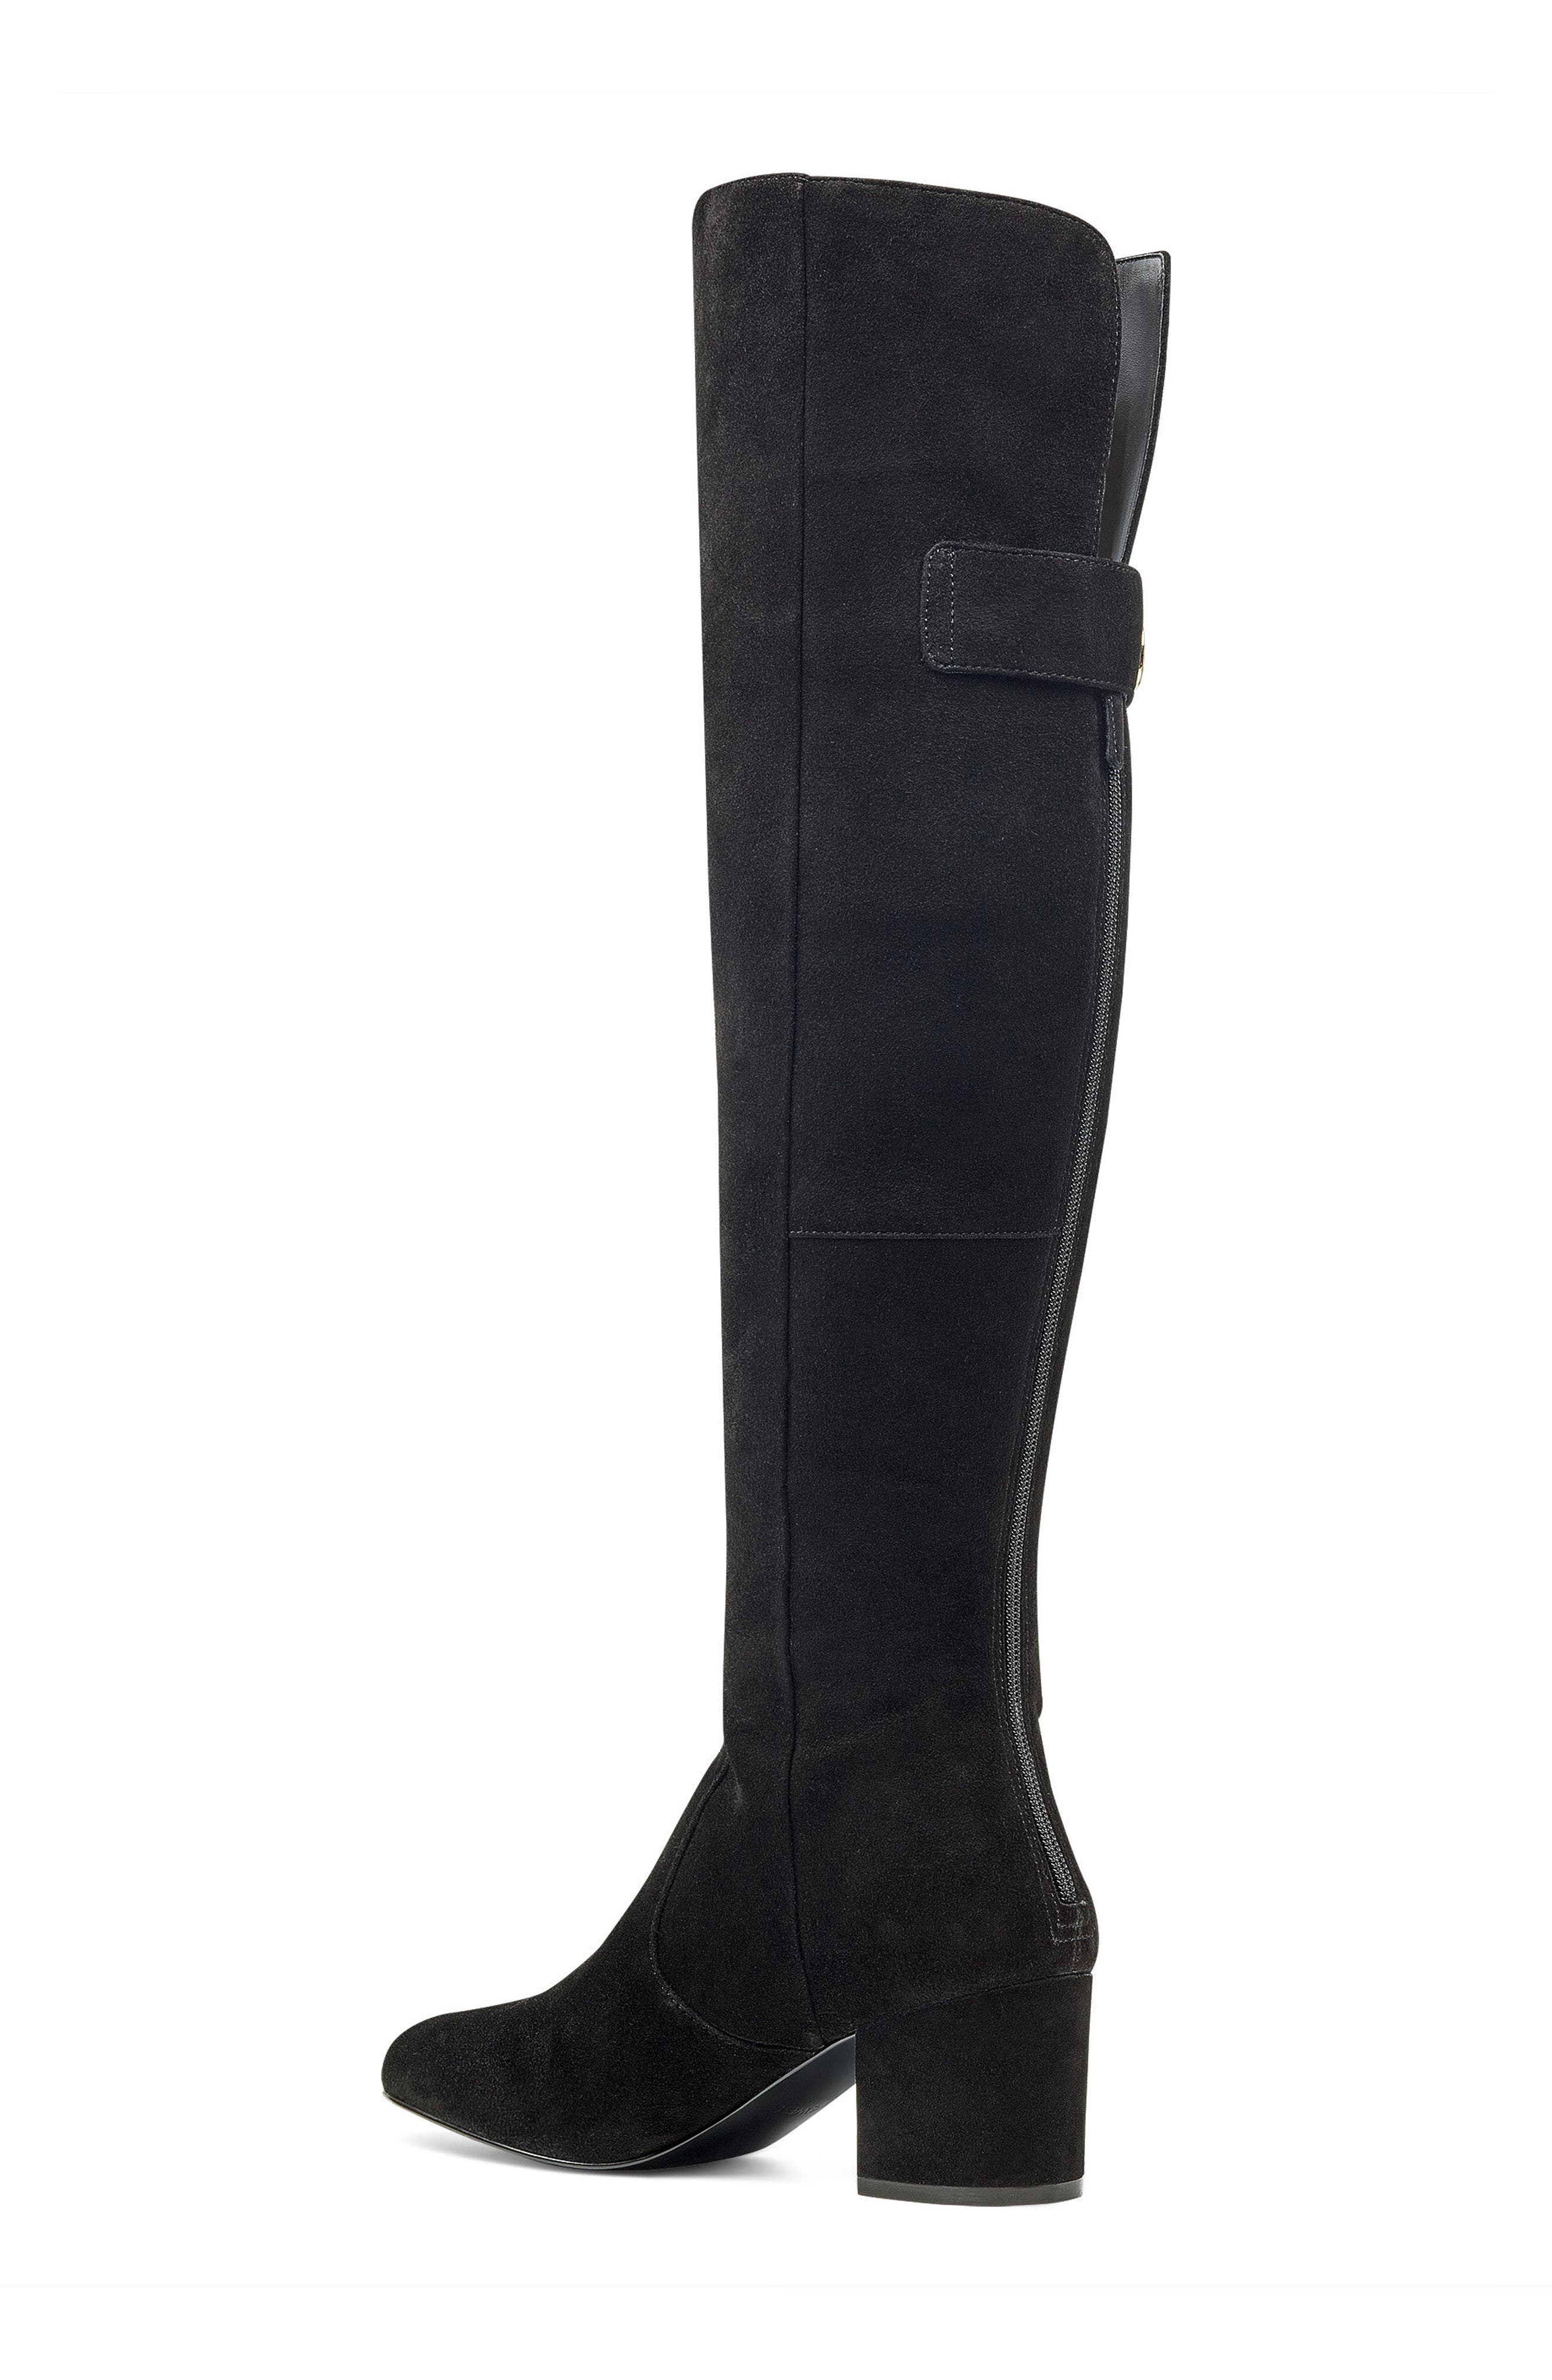 Queddy Over the Knee Boot,                             Alternate thumbnail 3, color,